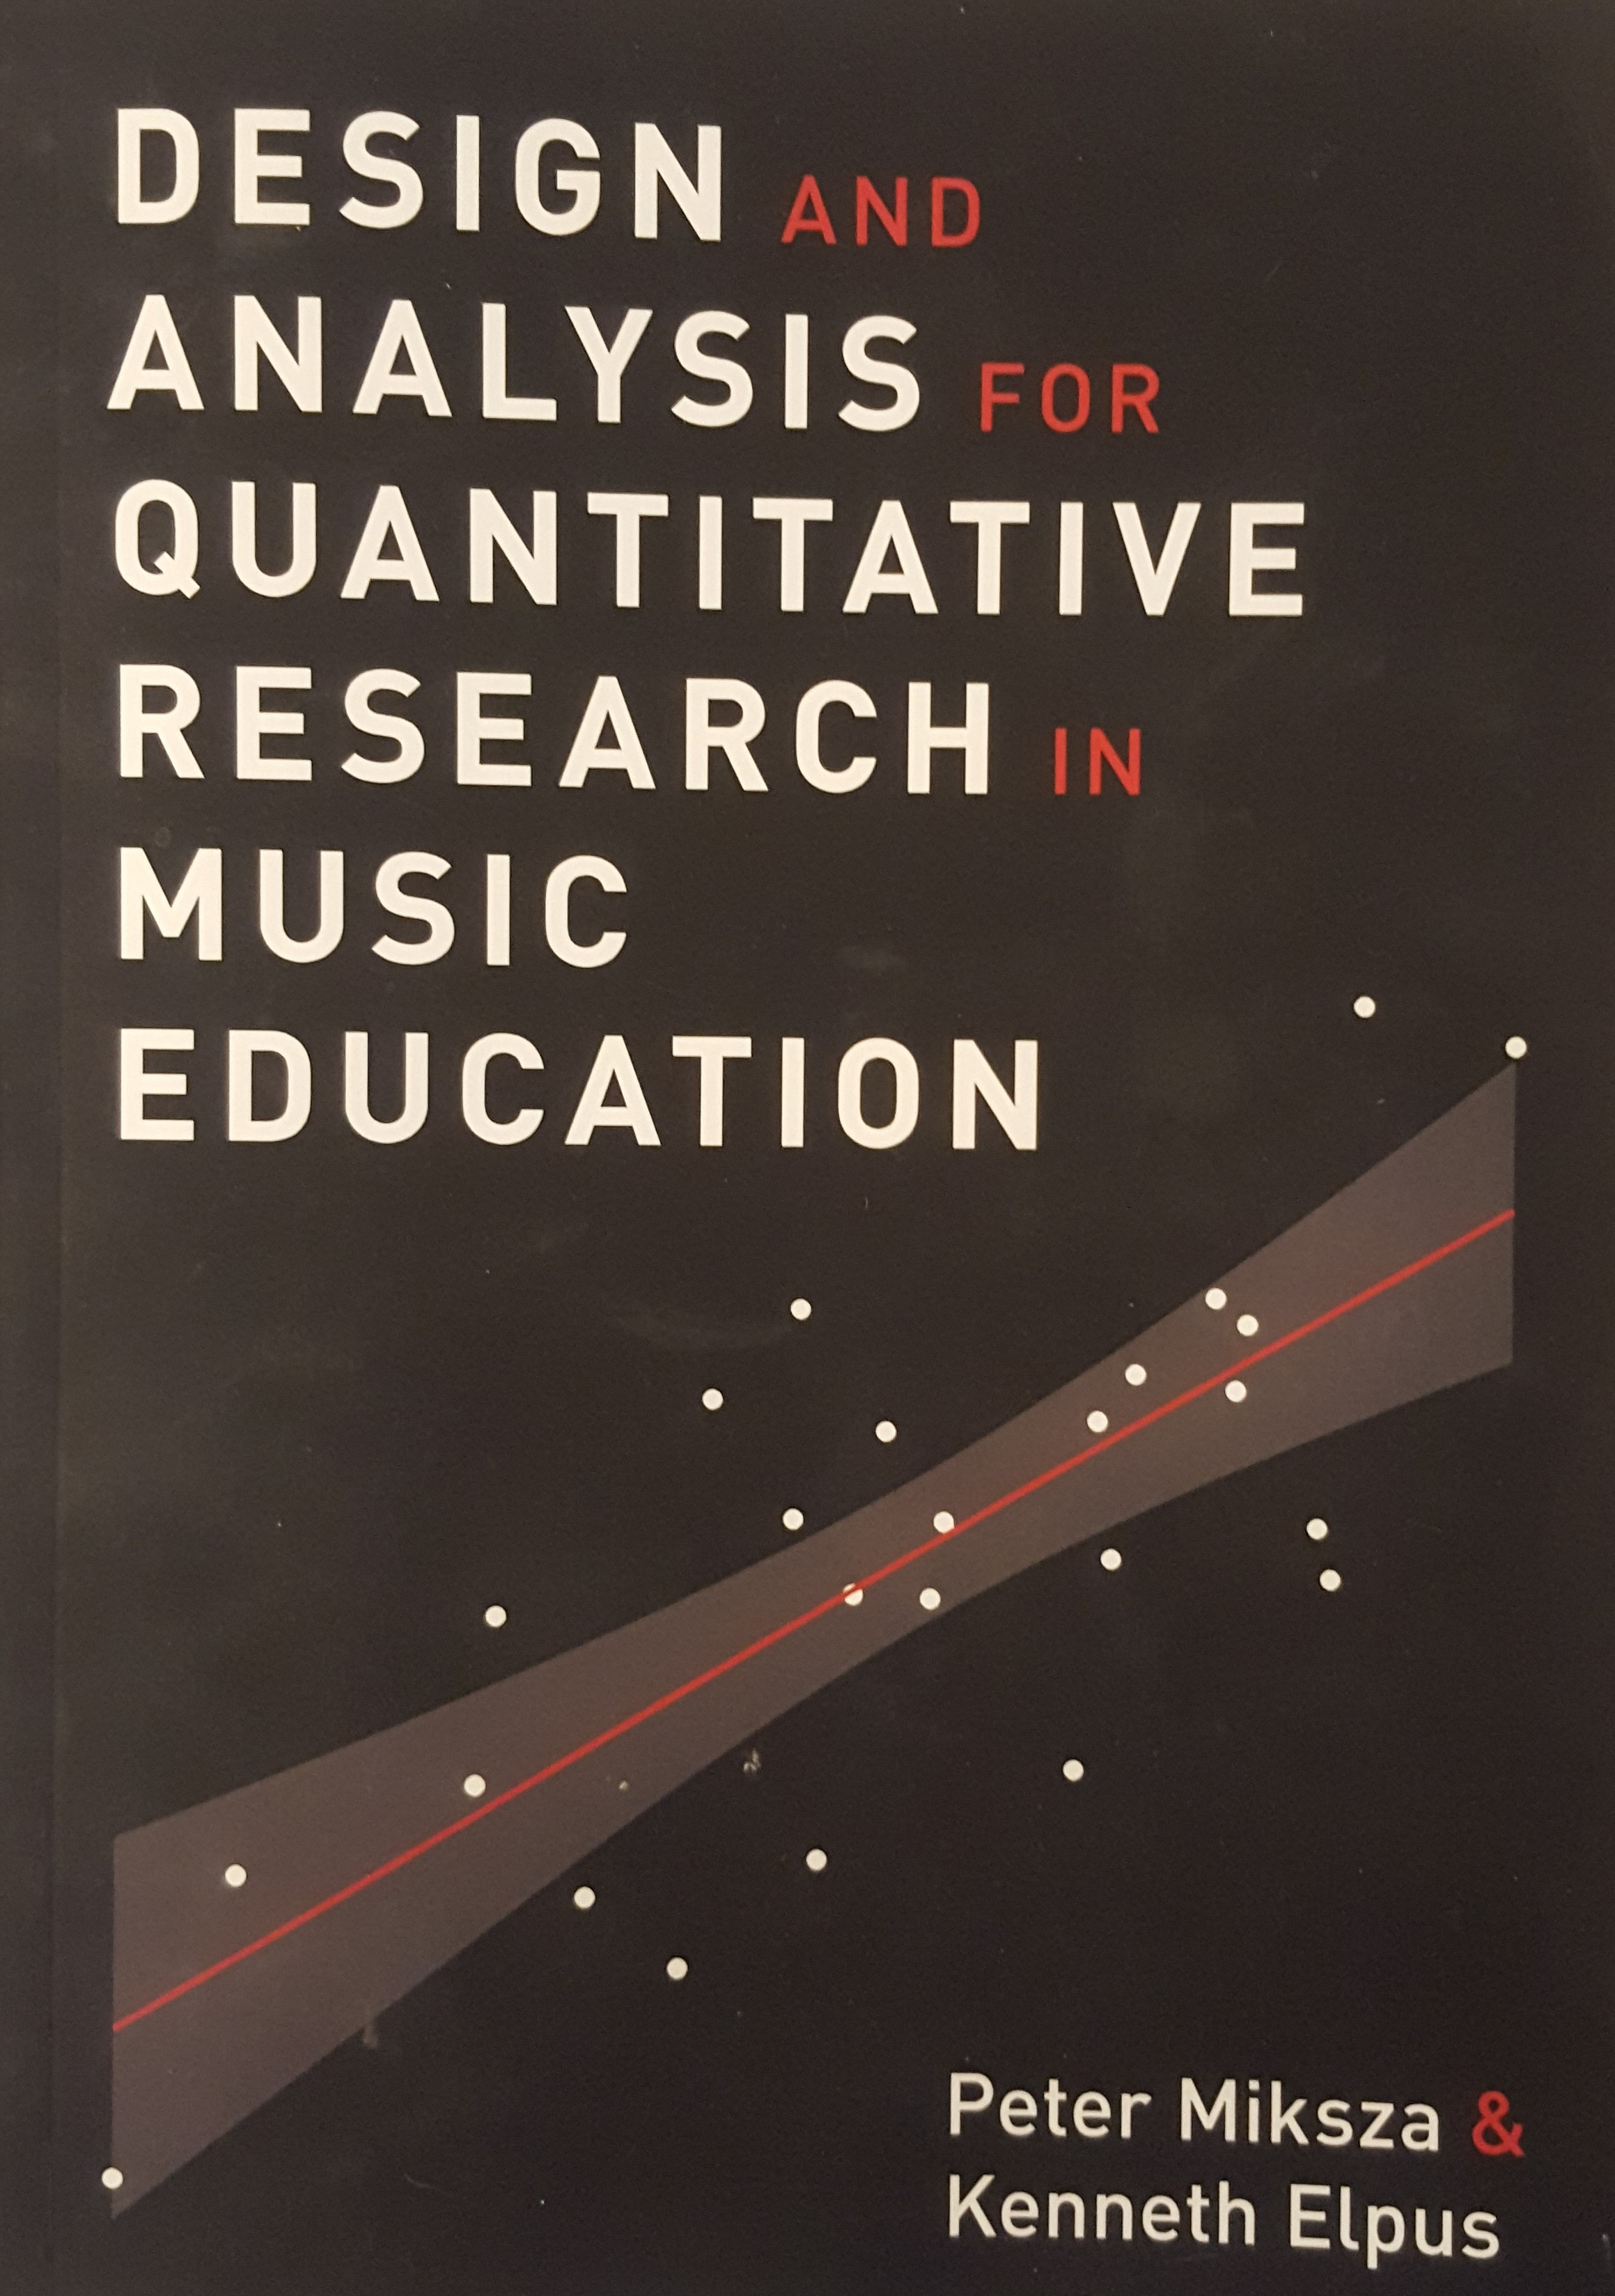 Design and Analysis front cover